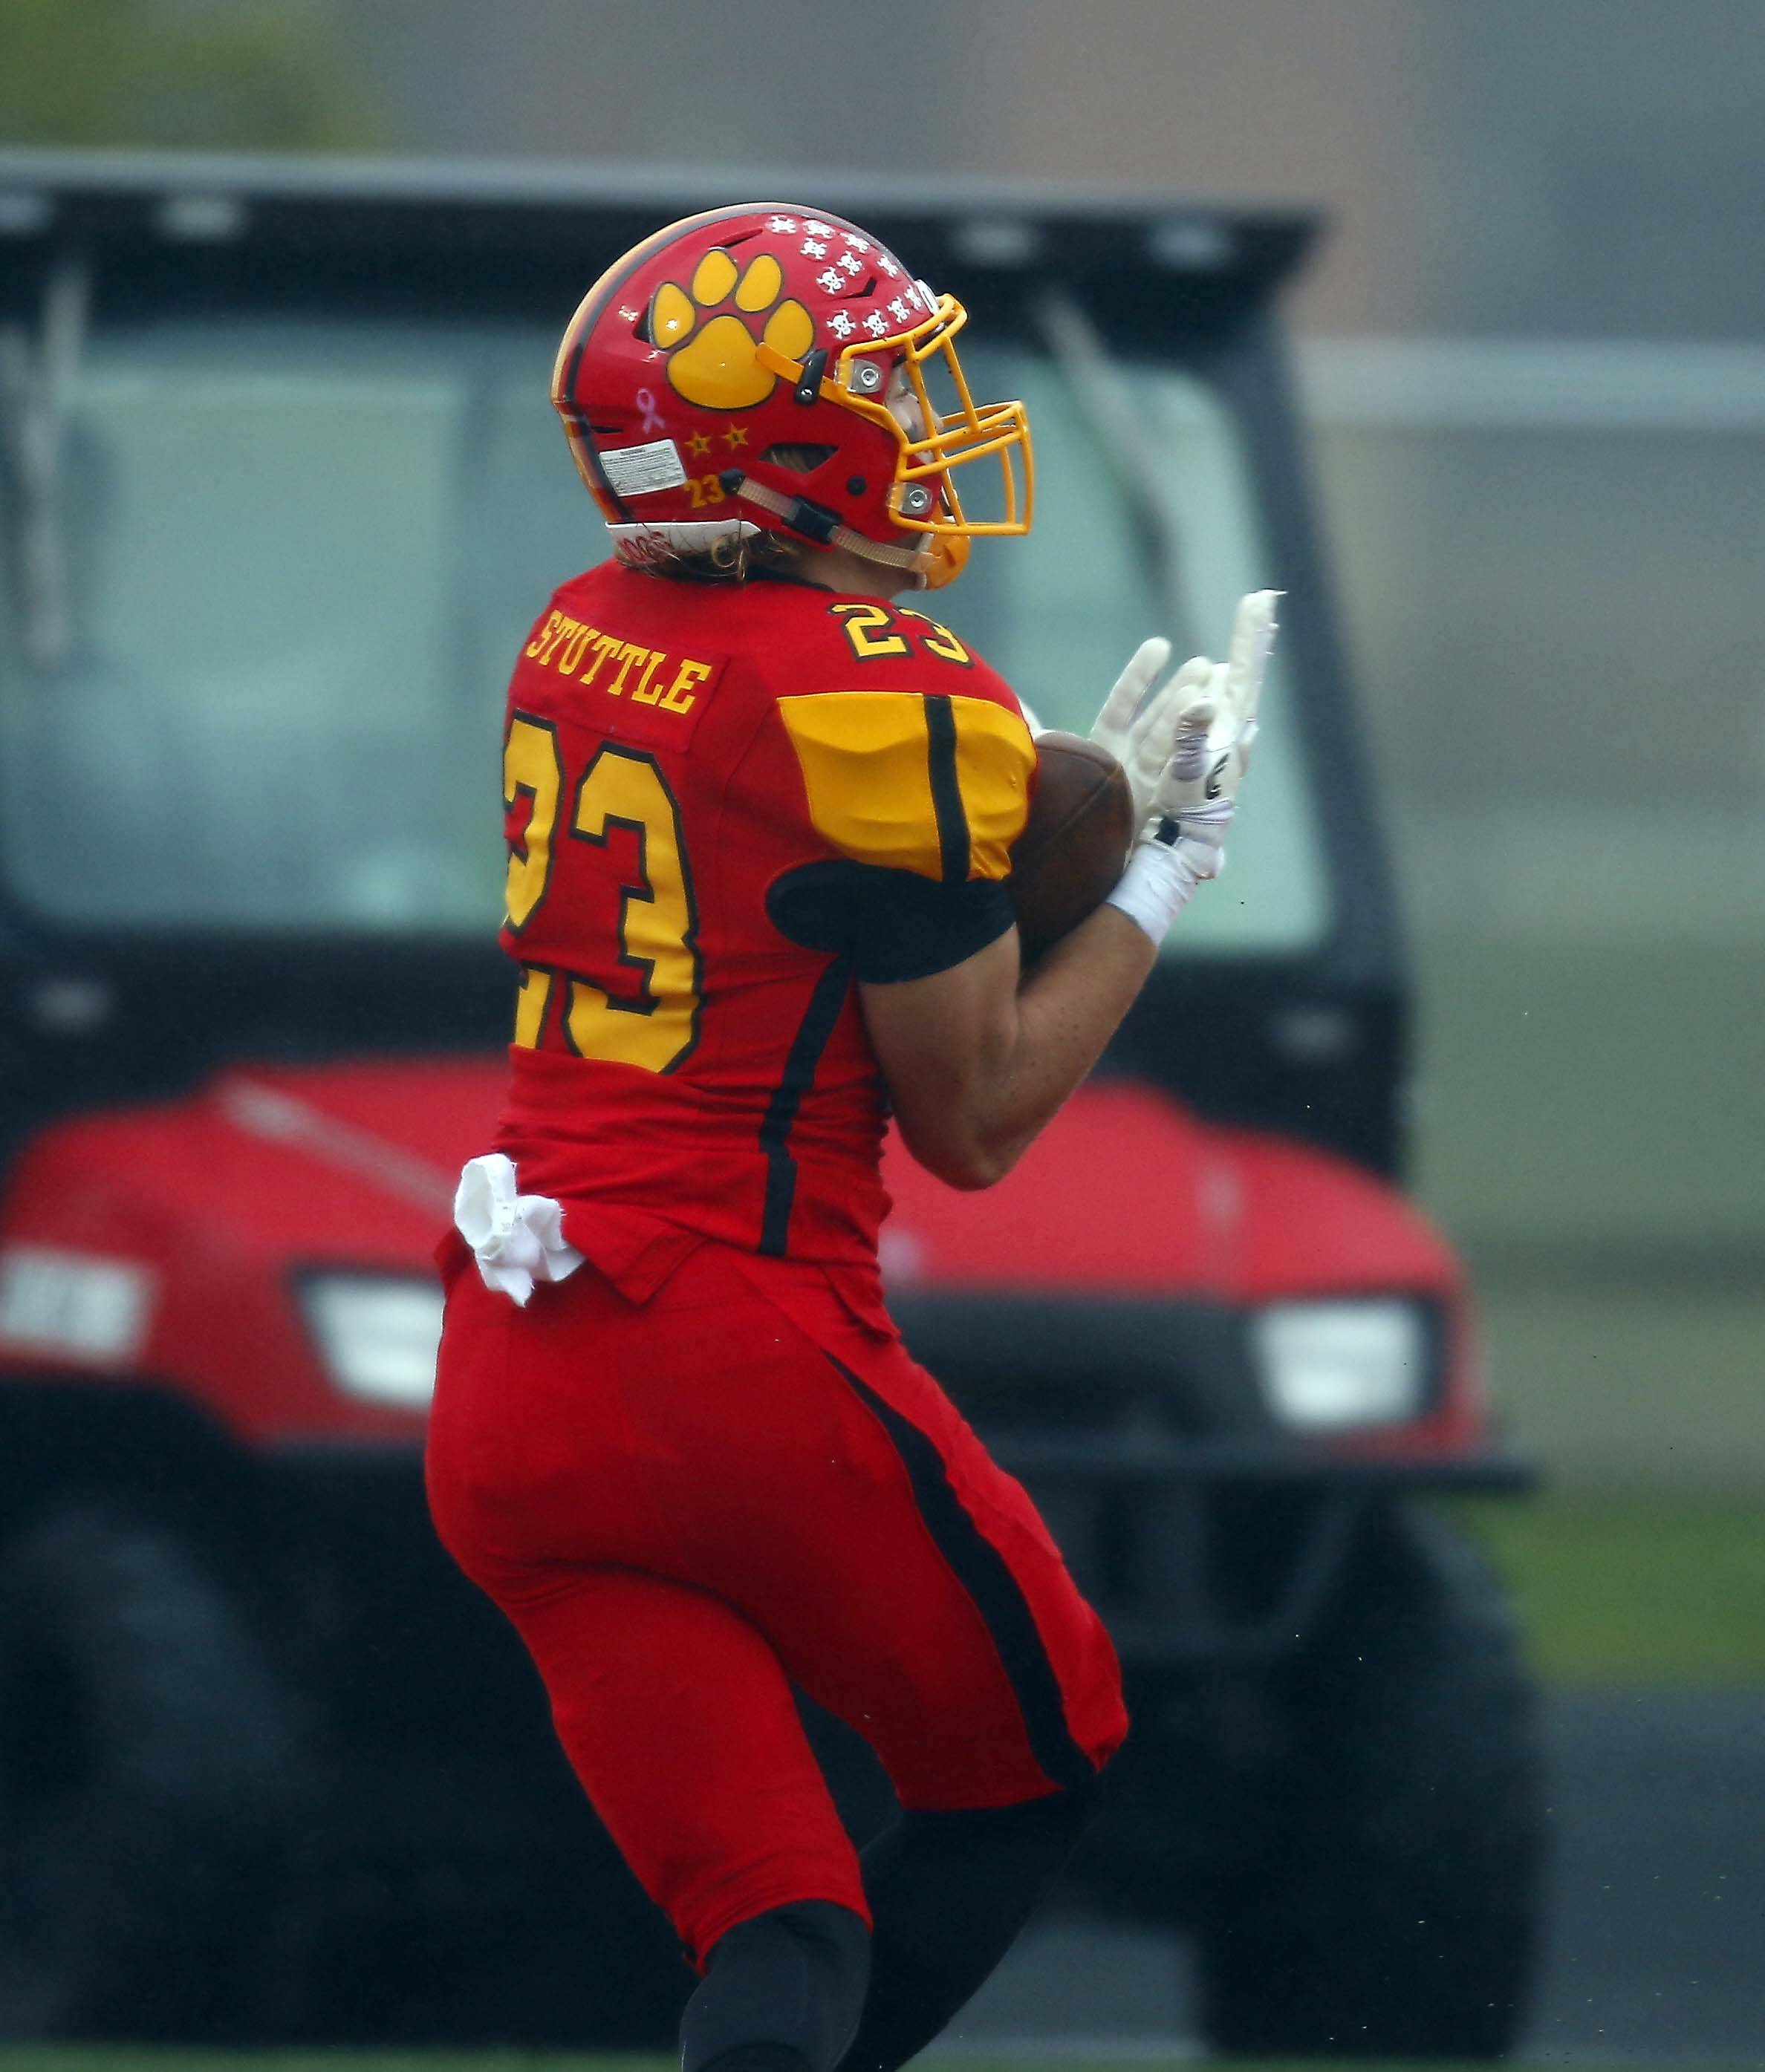 Batavia's Tom Stuttle (23) reels in a touchdown against Wheaton North during the second round of the Class 7A football playoffs in Batavia.